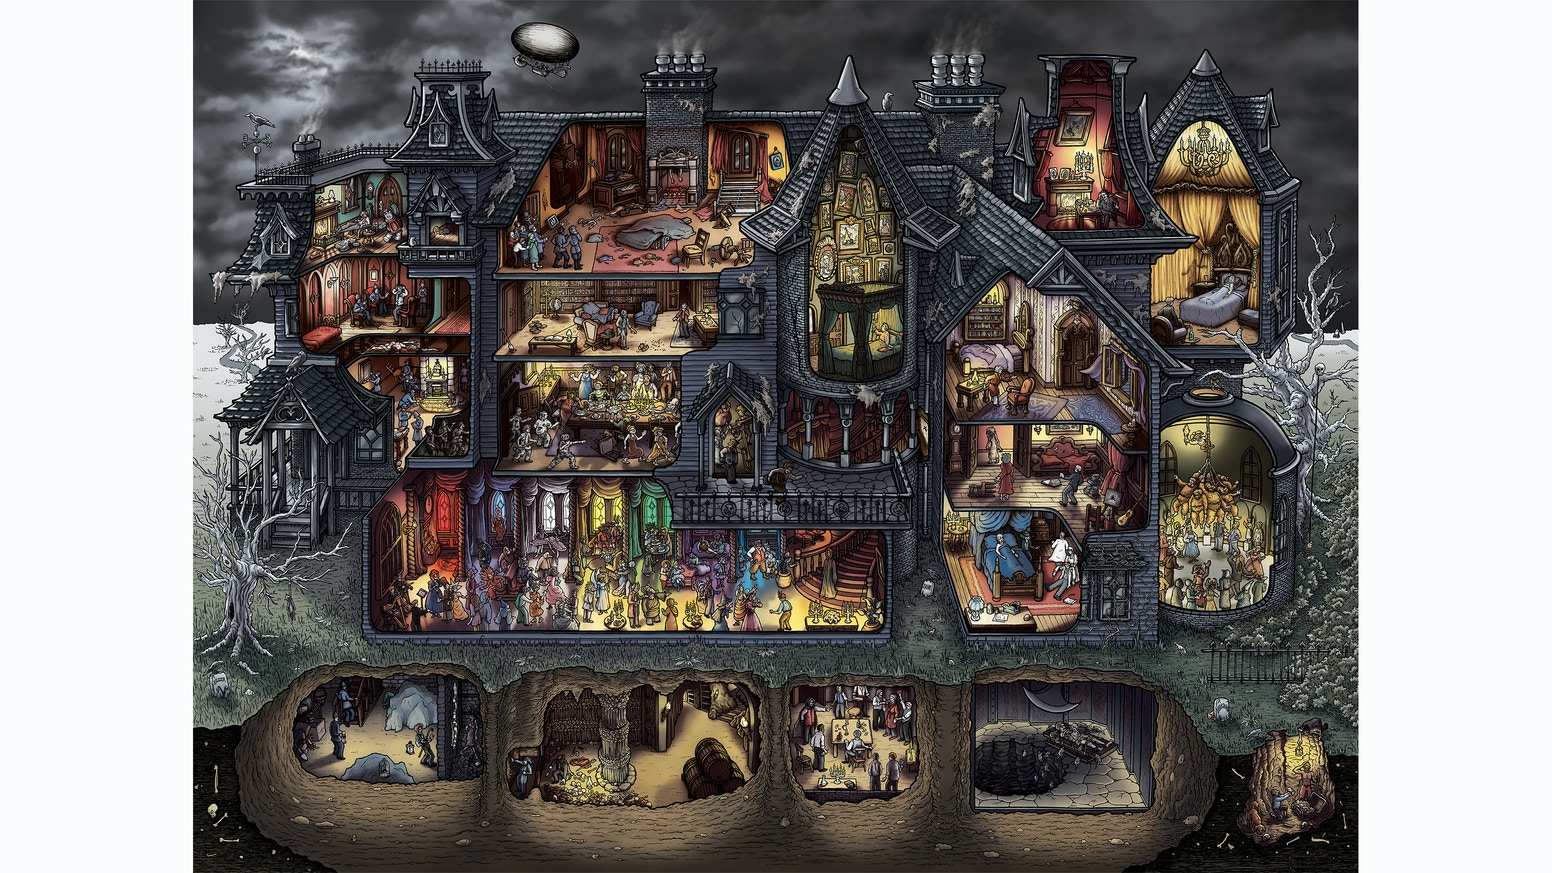 Aiming to fund the production of high quality prints and jigsaw puzzles featuring the Edgar Allan Poe Macabre Mansion illustration.